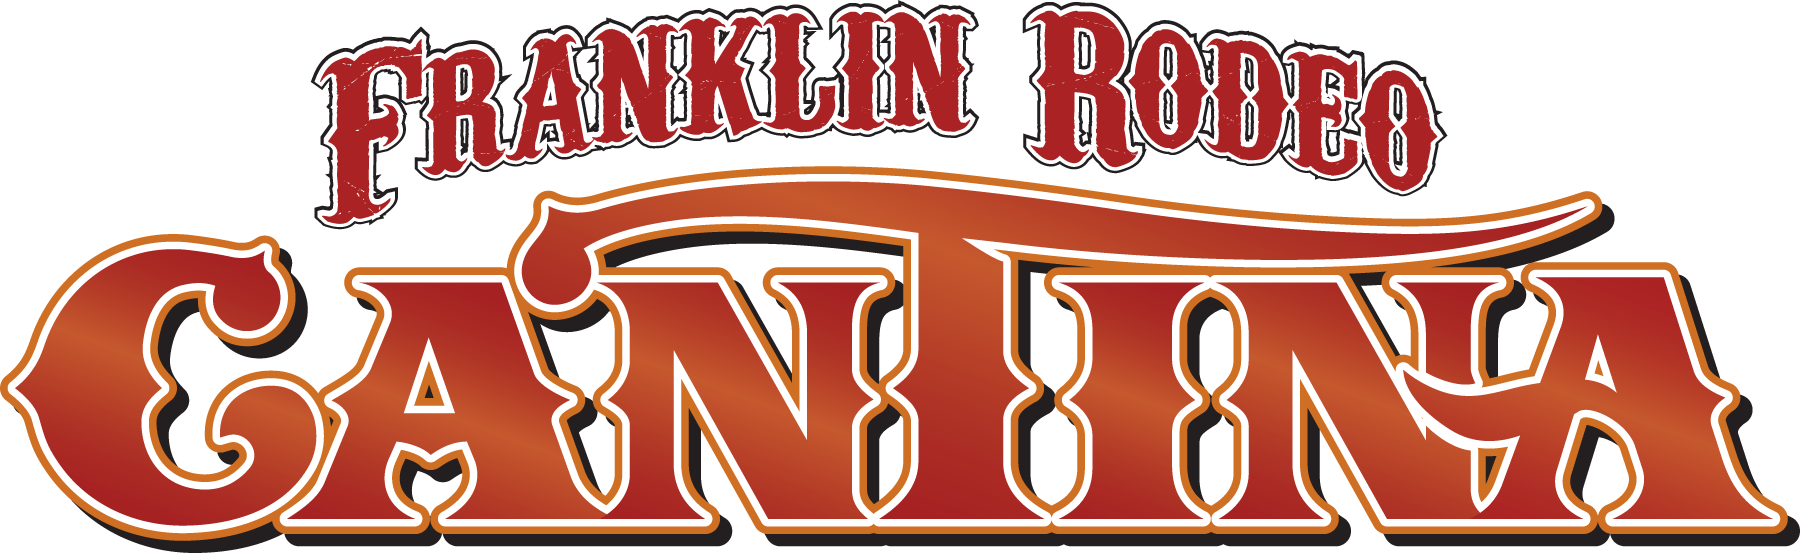 Tickets for Franklin Rodeo Cantina in Franklin from ShowClix